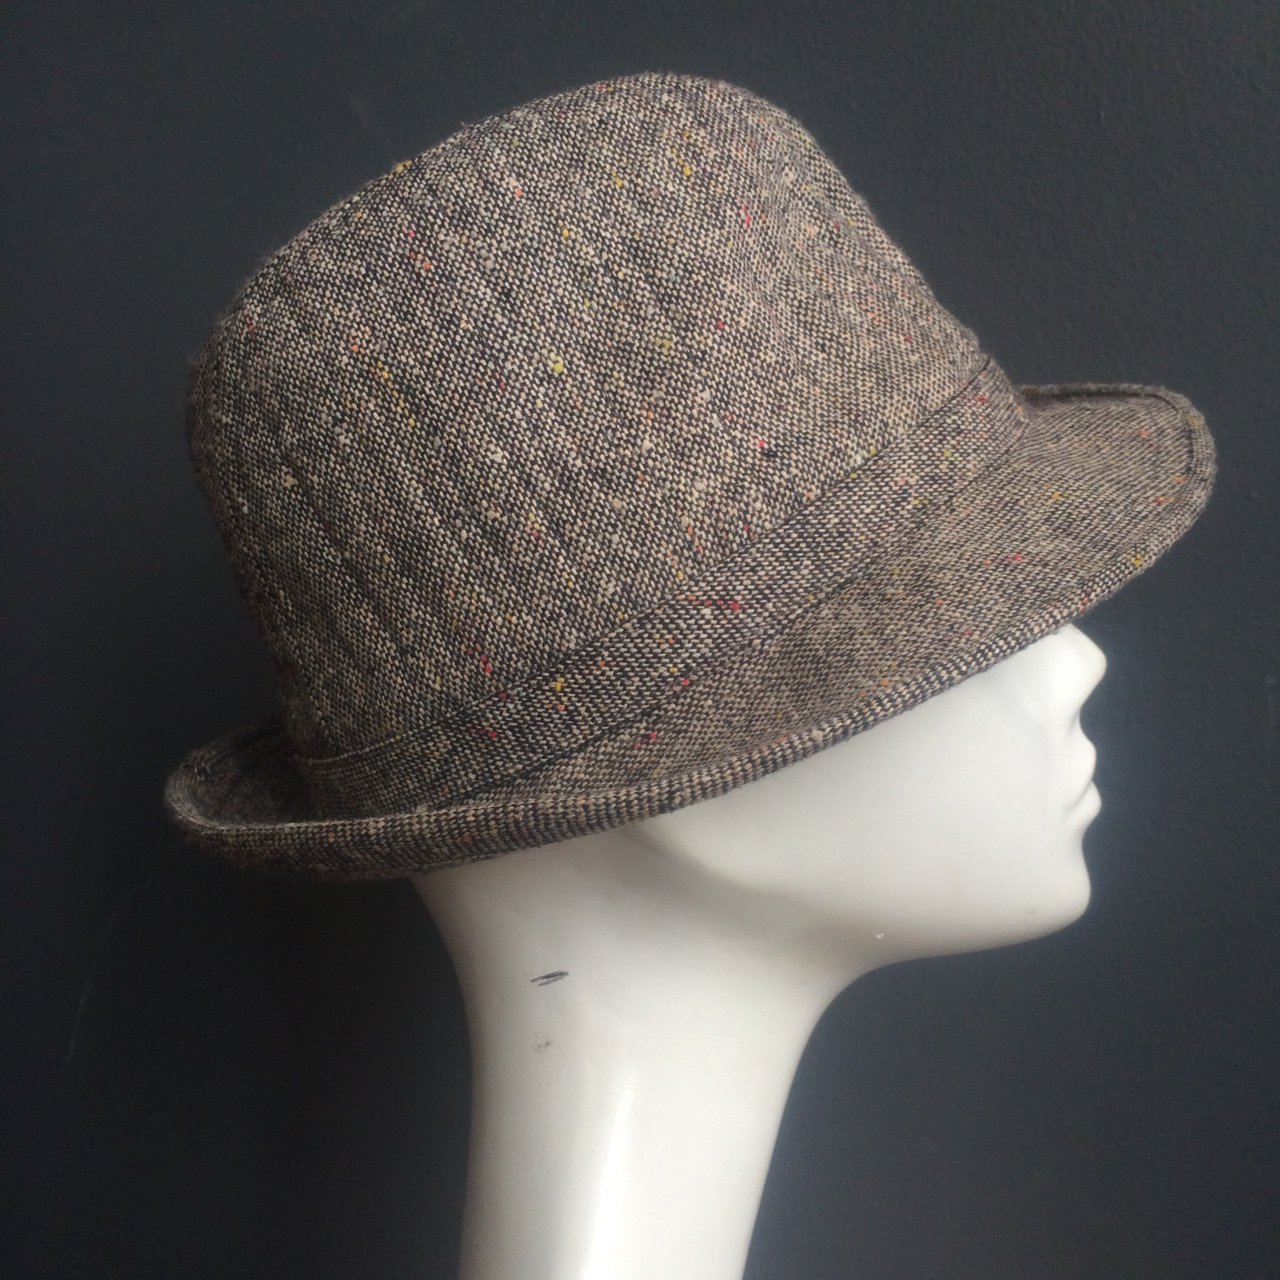 763e6daa2d4 Super cool vintage tweed fedora hat. Small Size (21-22